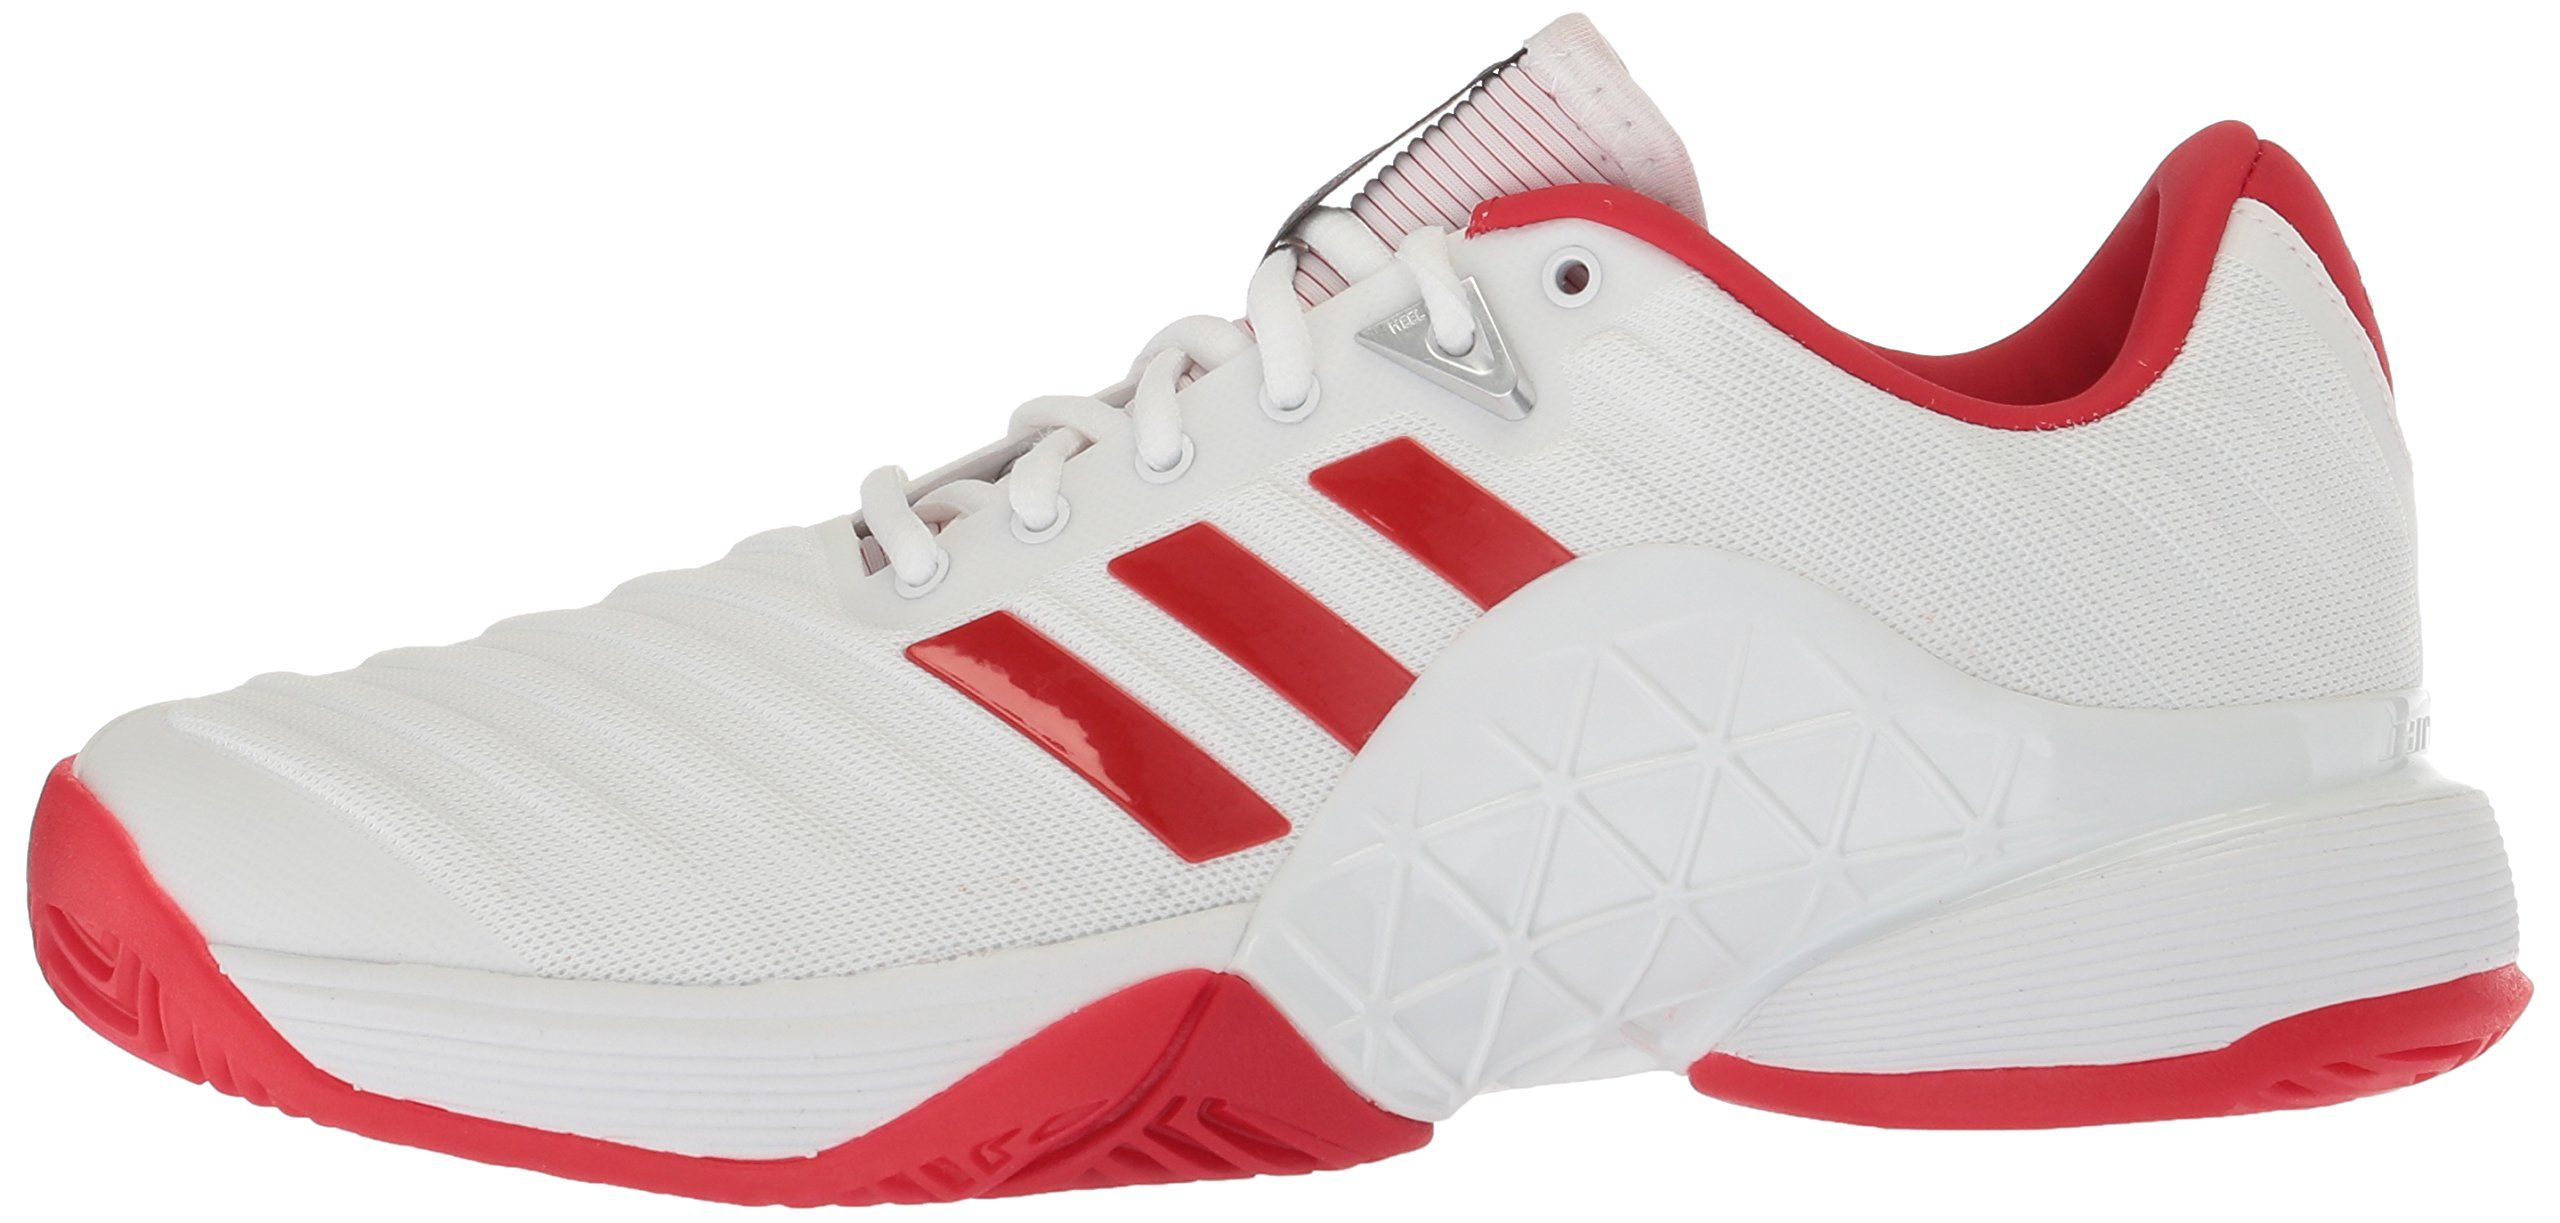 adidas Performance Womens Barricade 2018 W Tennis Shoe